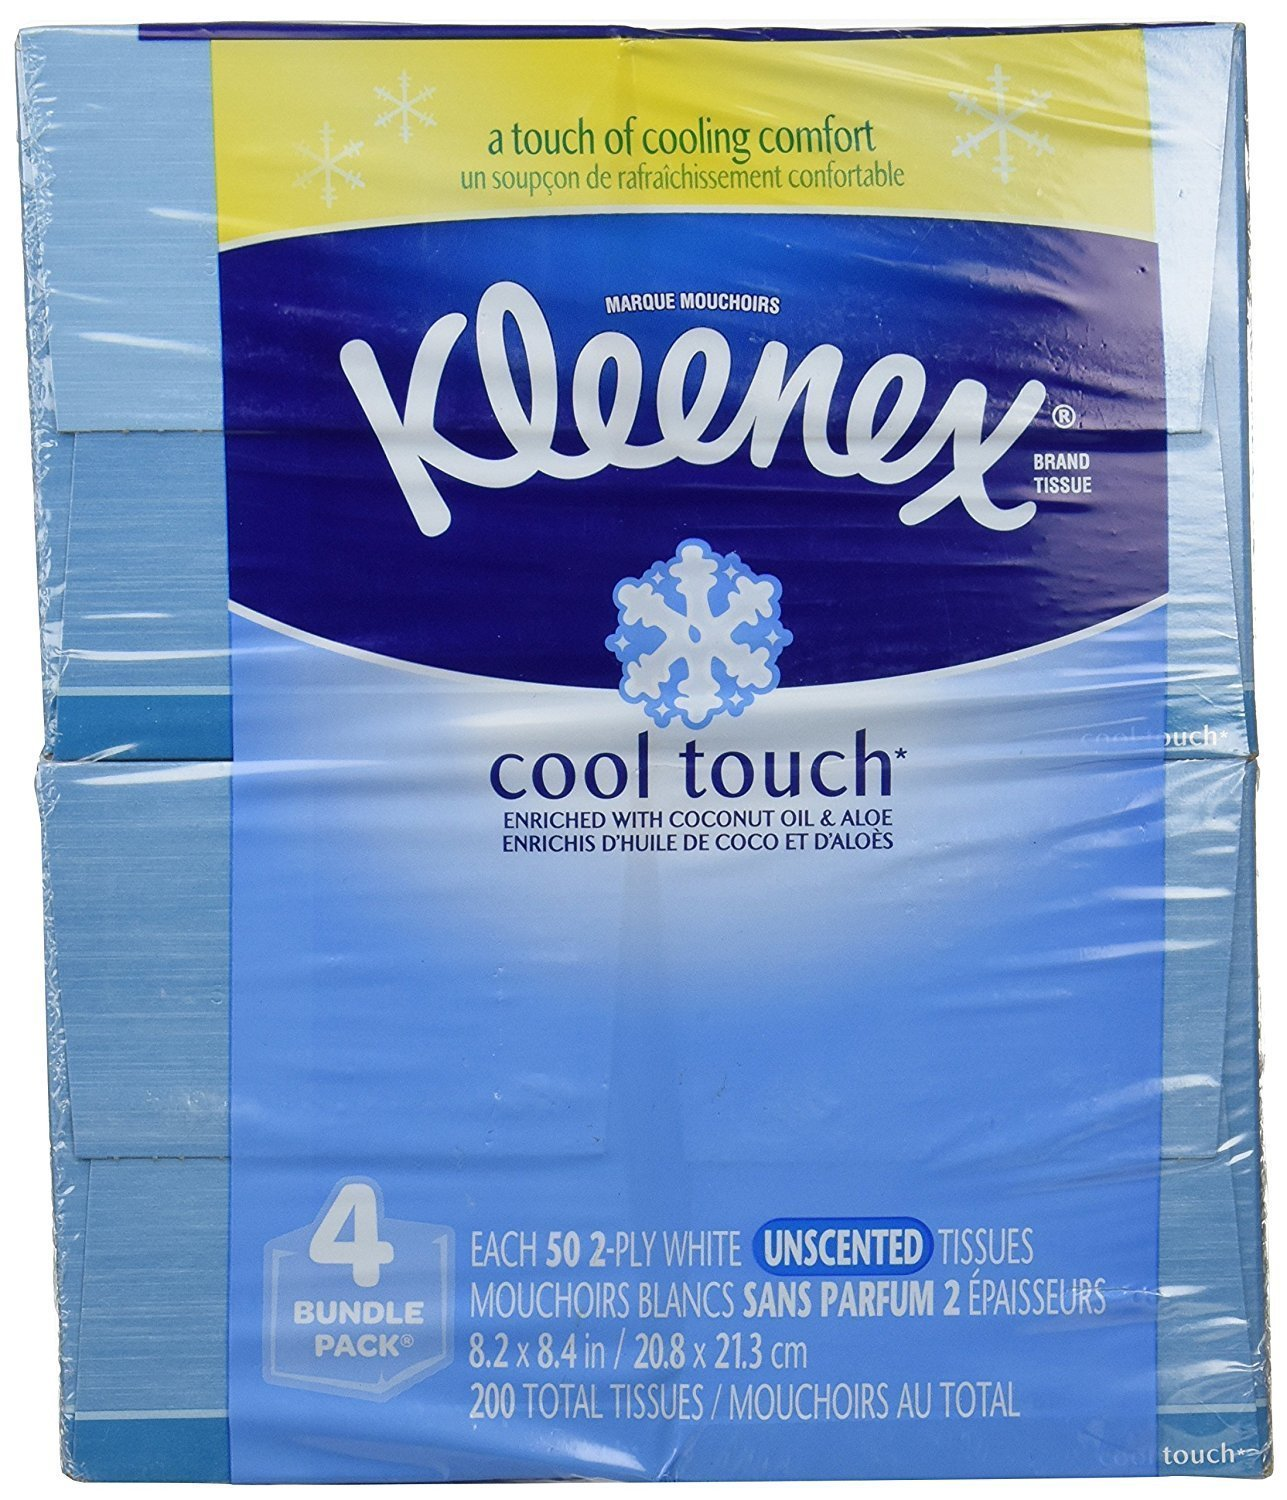 Kleenex 700690401841 Cool Touch Tissues, Upright-50 ct-16 pk, 16 Pack, no, 16 Pack